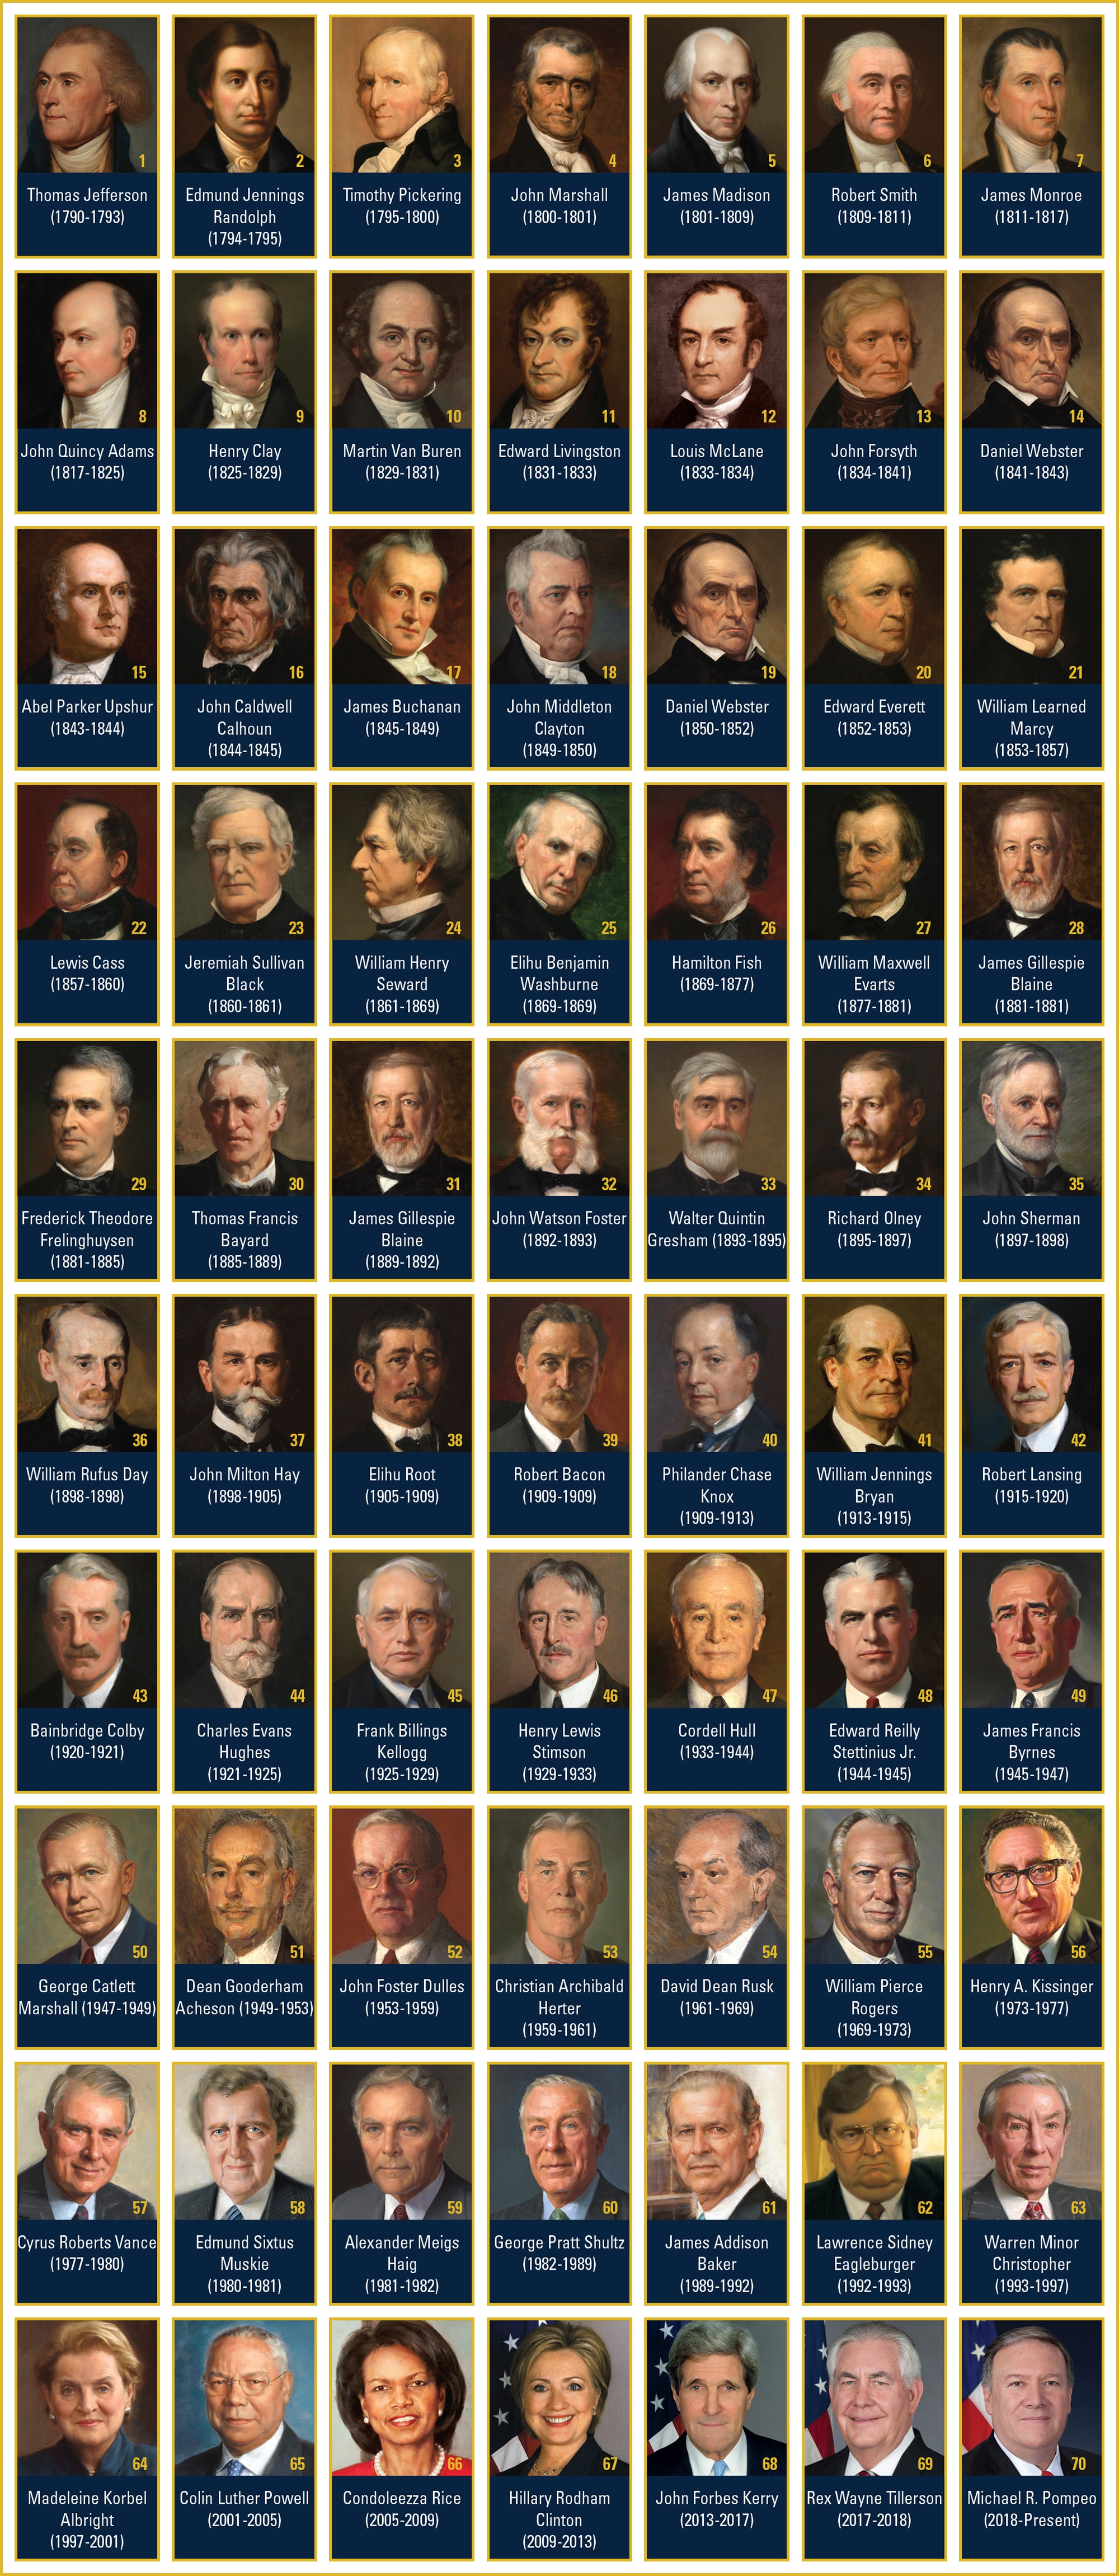 Photos and dates served of the U.S. Secretaries of State past and present.